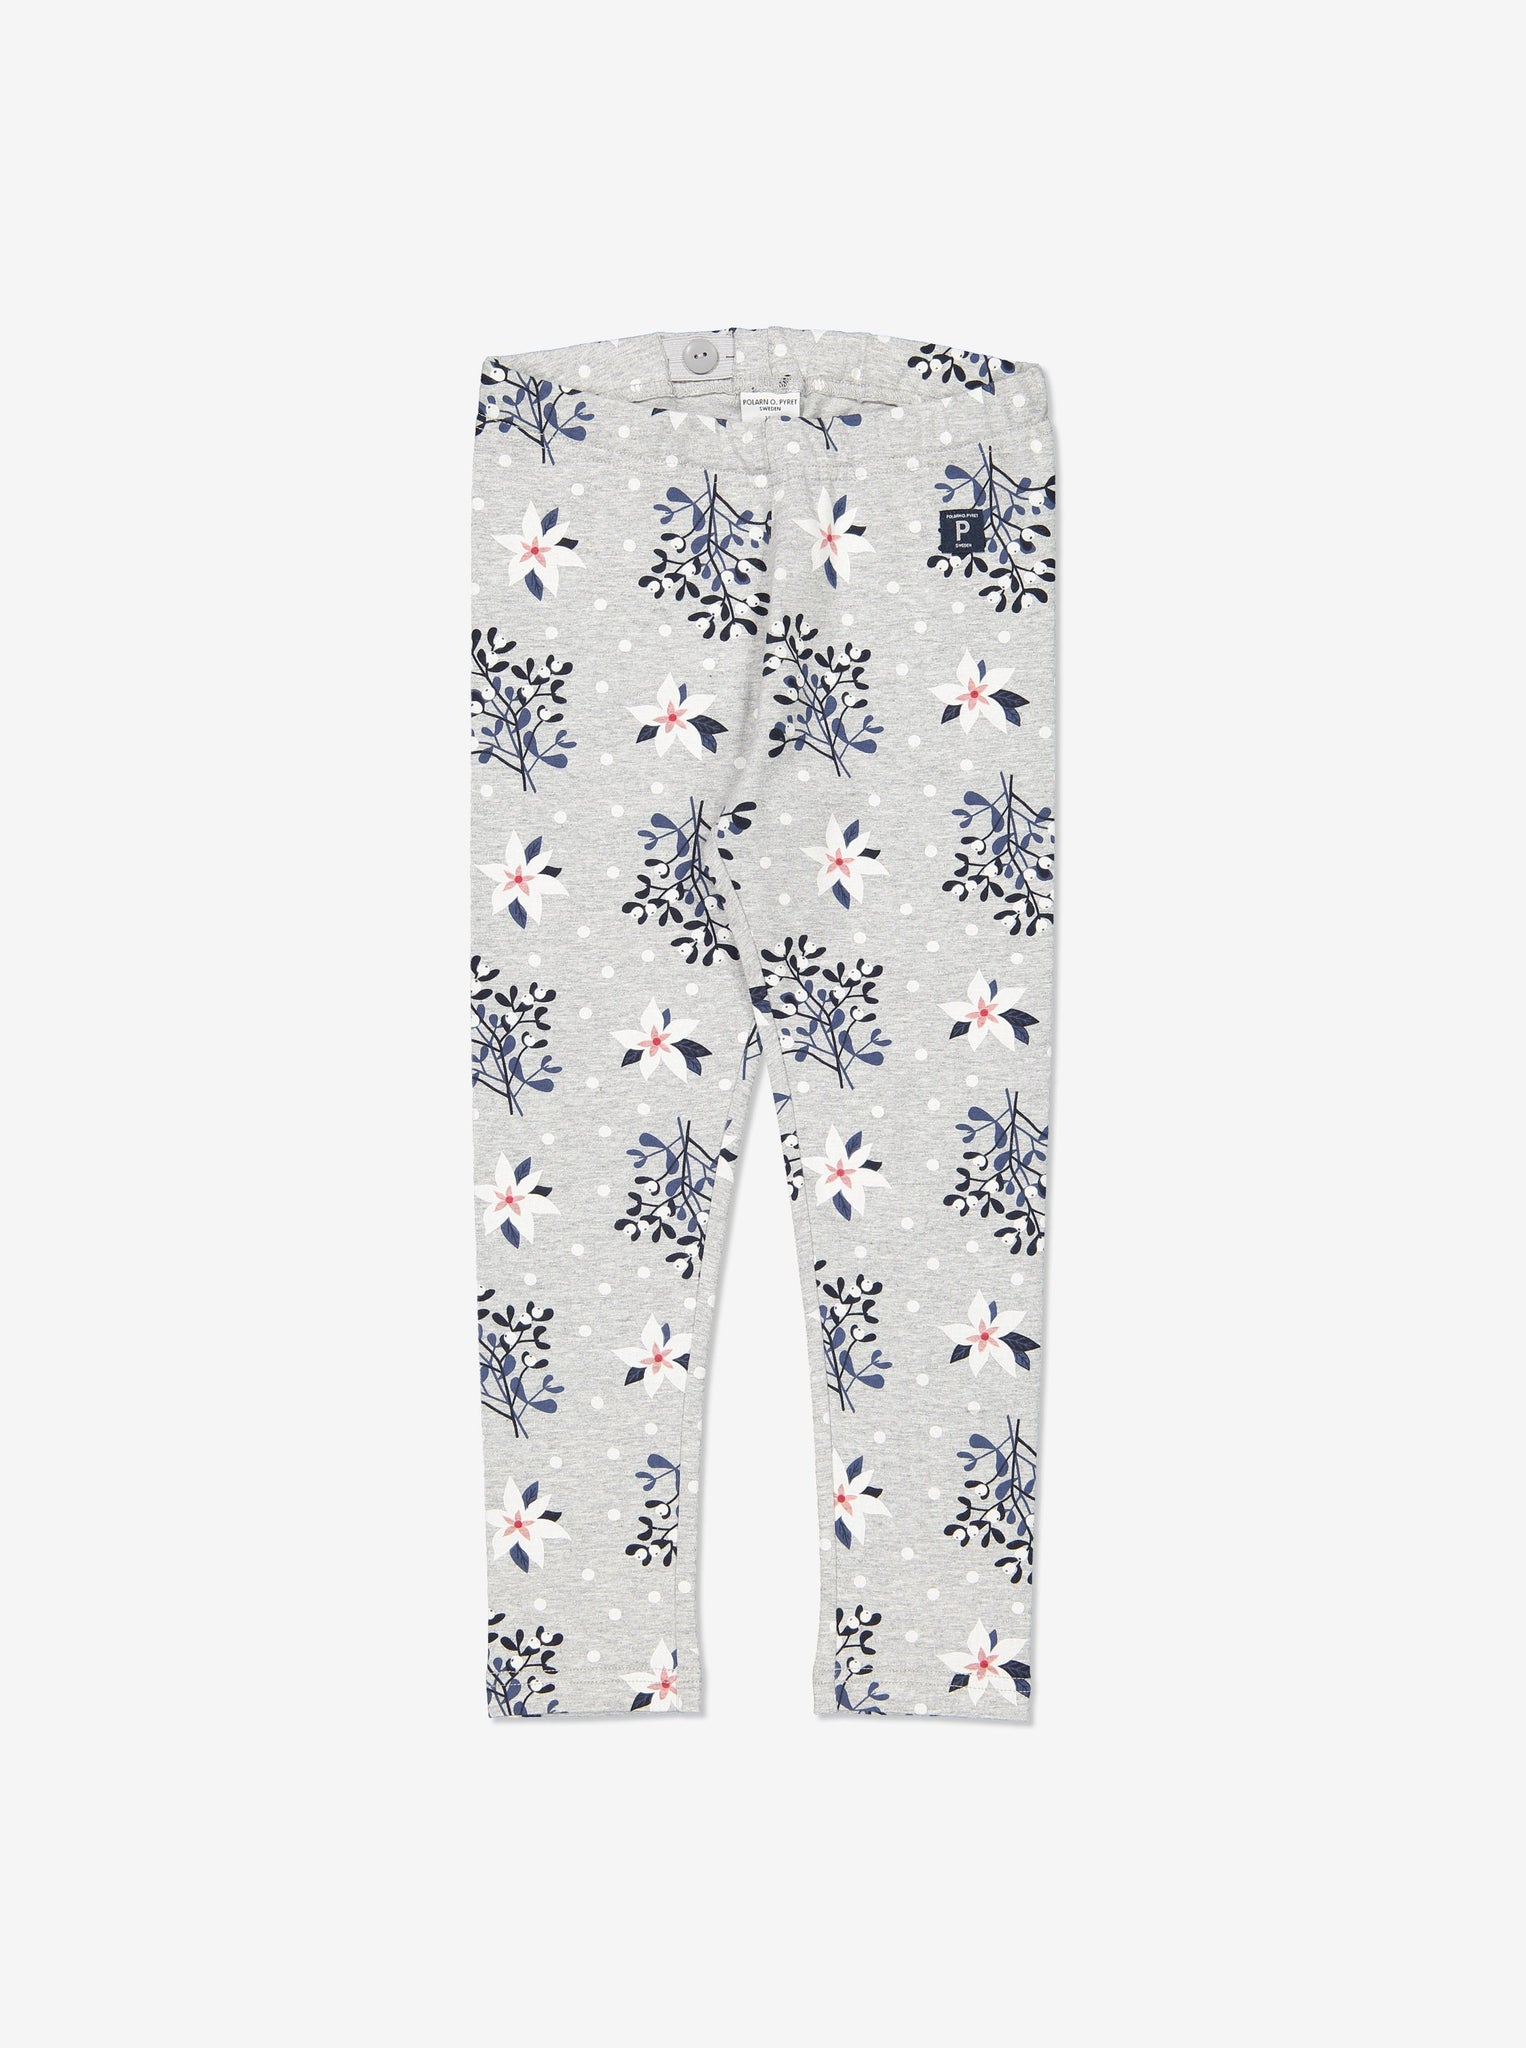 Mistletoe Print Kids Leggings 1-8years Grey Girl